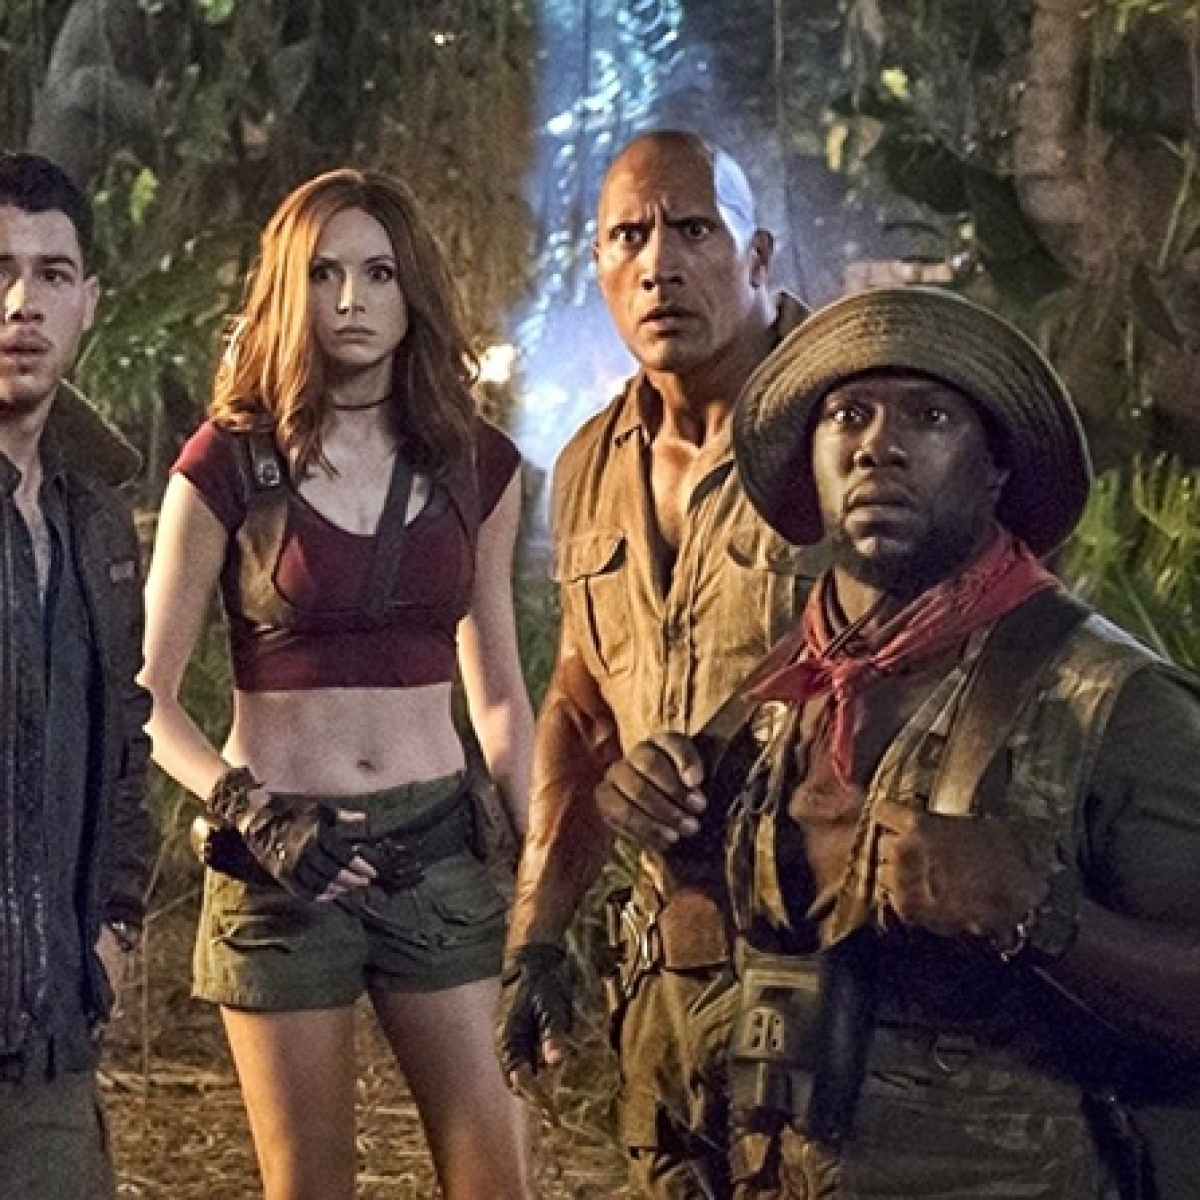 'Jumanji: The Next Level' Movie Review: It's fun on the run